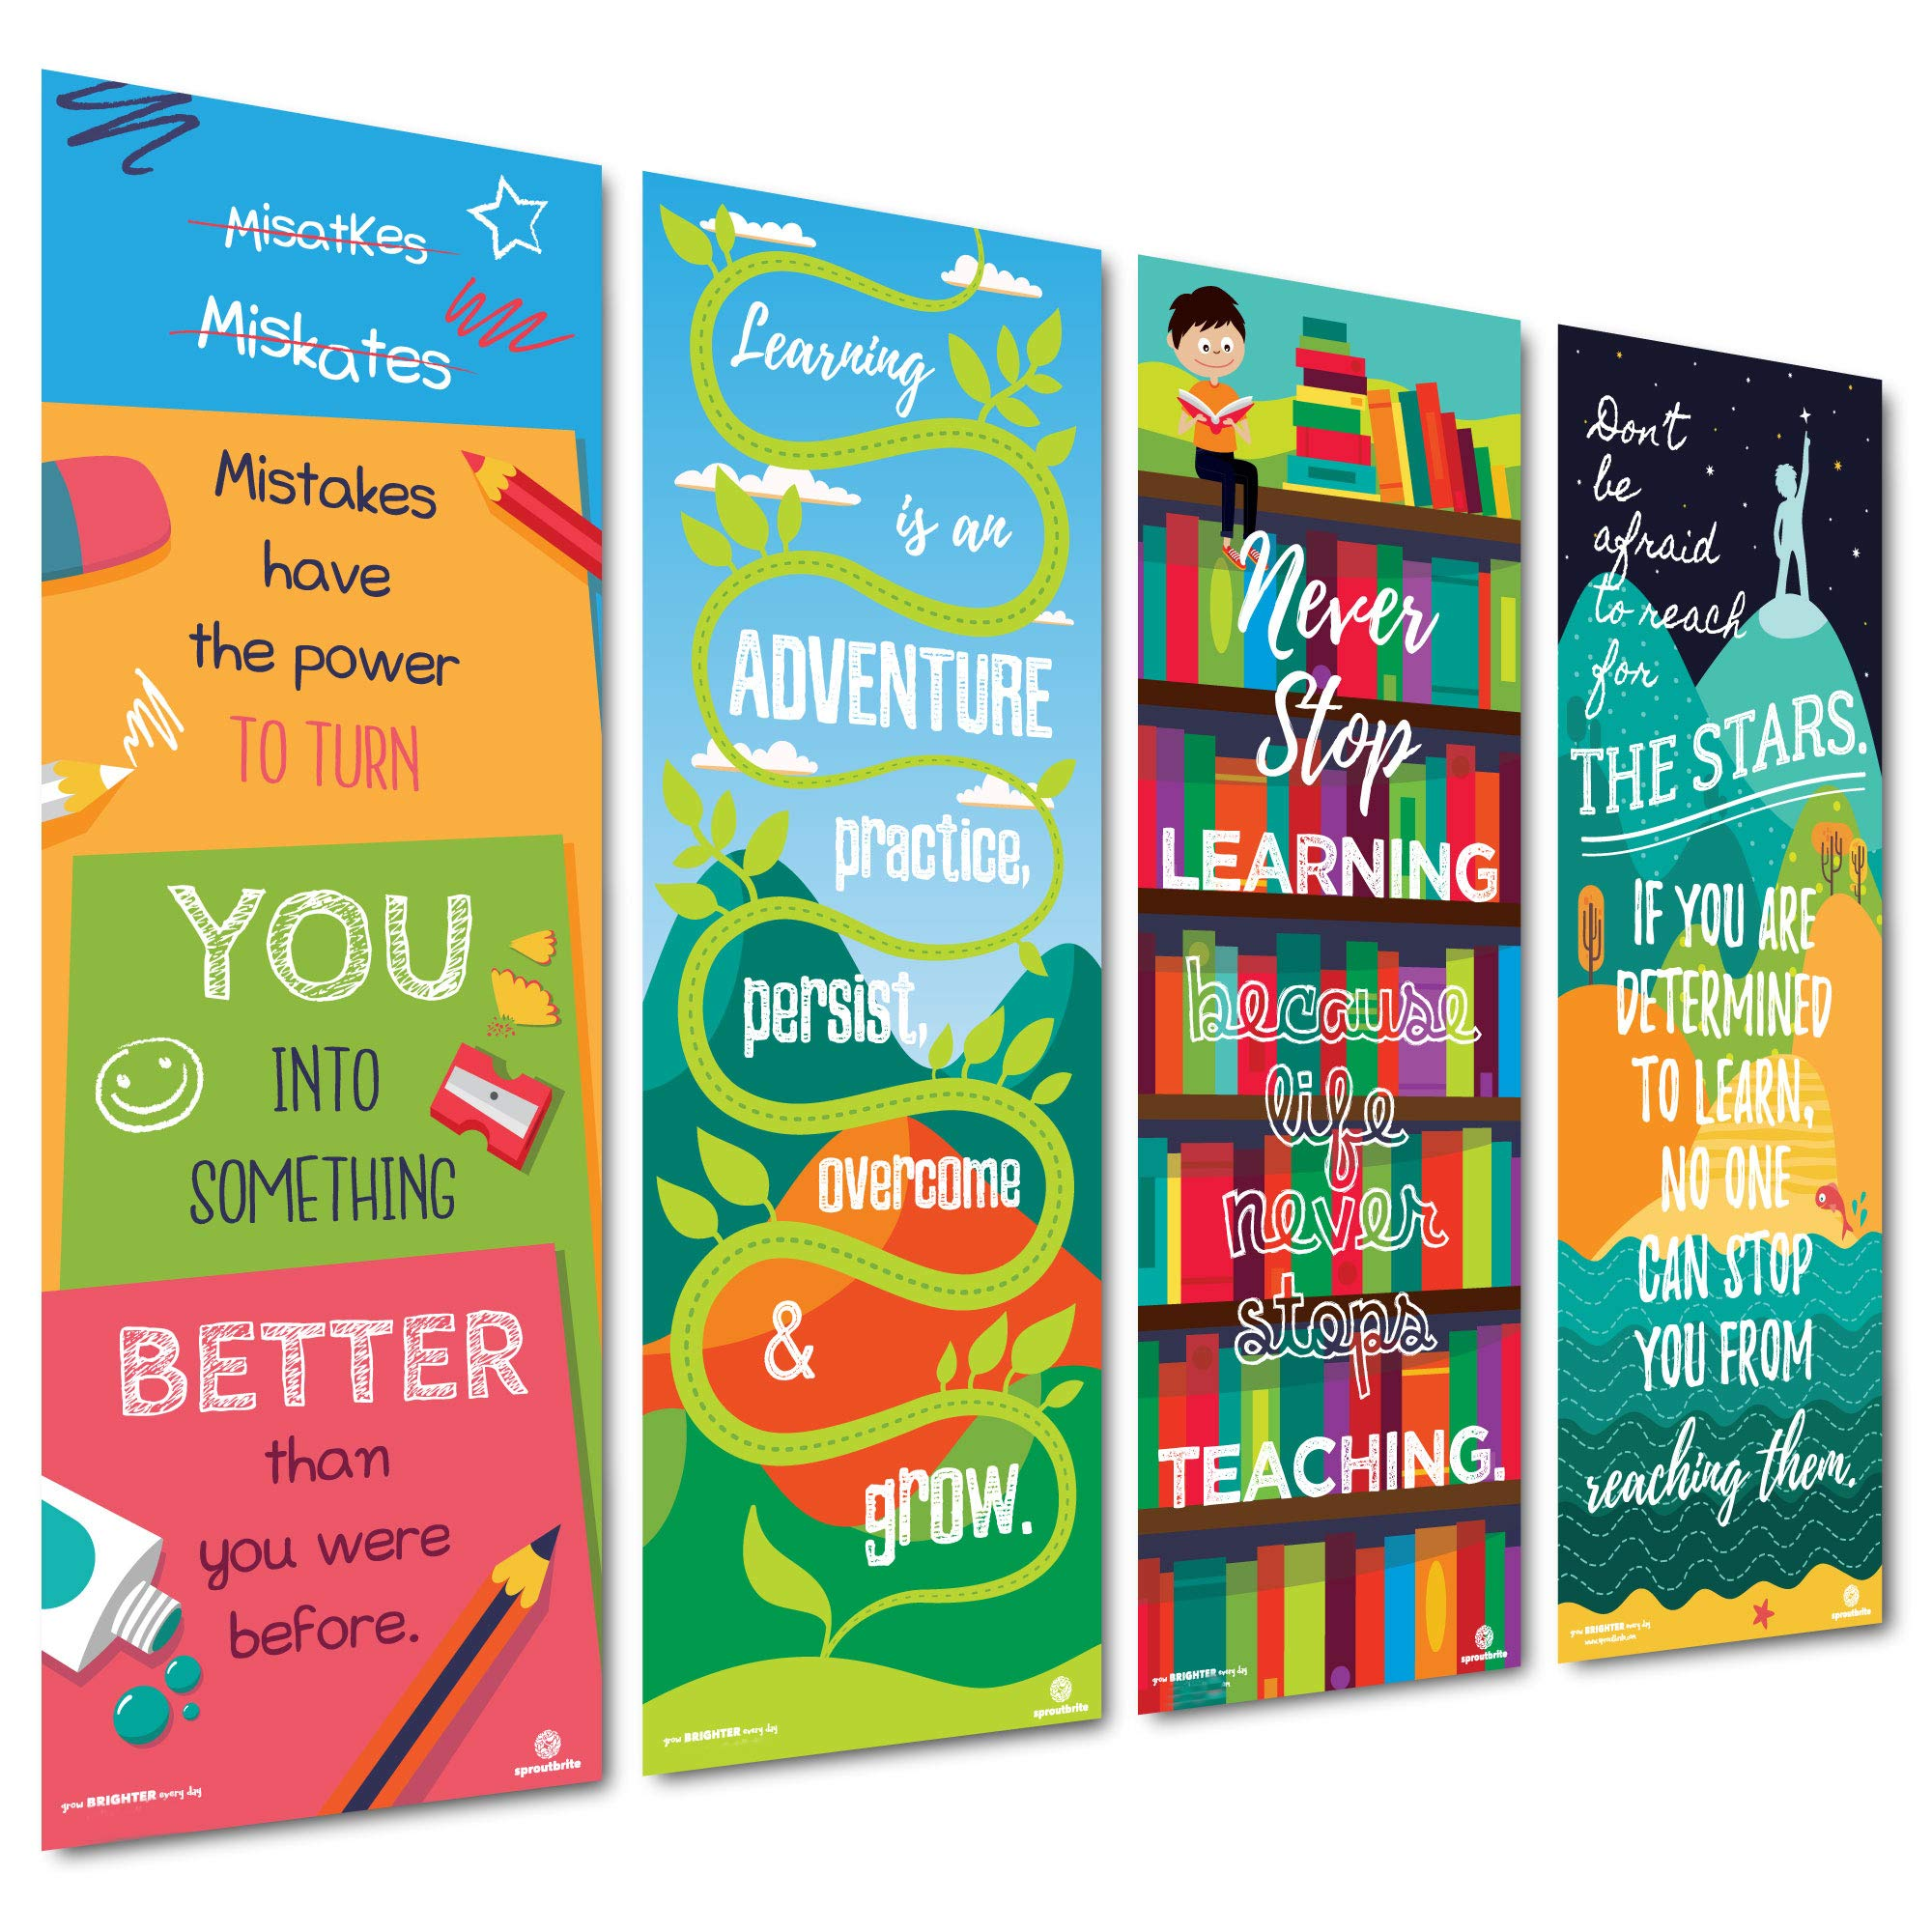 Sproutbrite Classroom Vertical Banner/Posters for Decorations - Educational, Motivational & Inspirational Growth Mindset for Teacher, Students - 4 Poster Pack - 13''x39'' Each